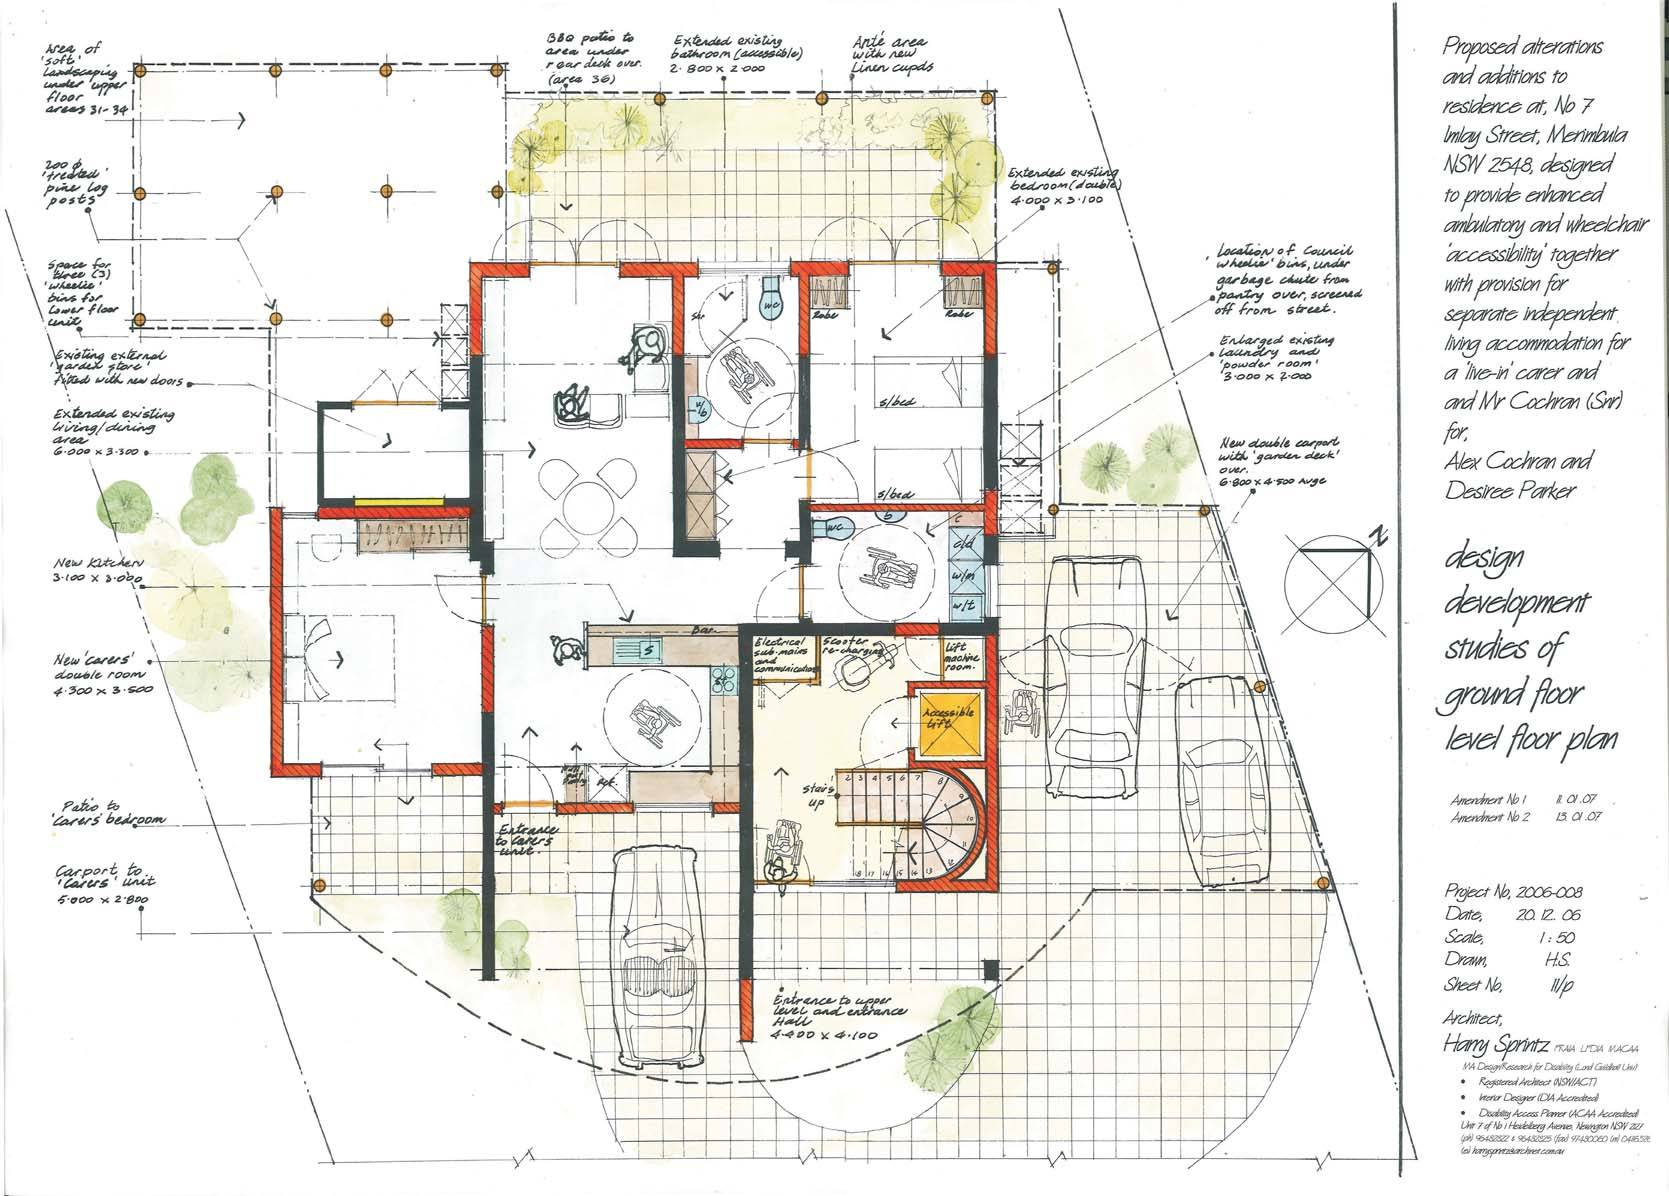 Related Universal Home Design Plans 291552 Related Universal Home Design Plans House Plans 55654 On Universal Home